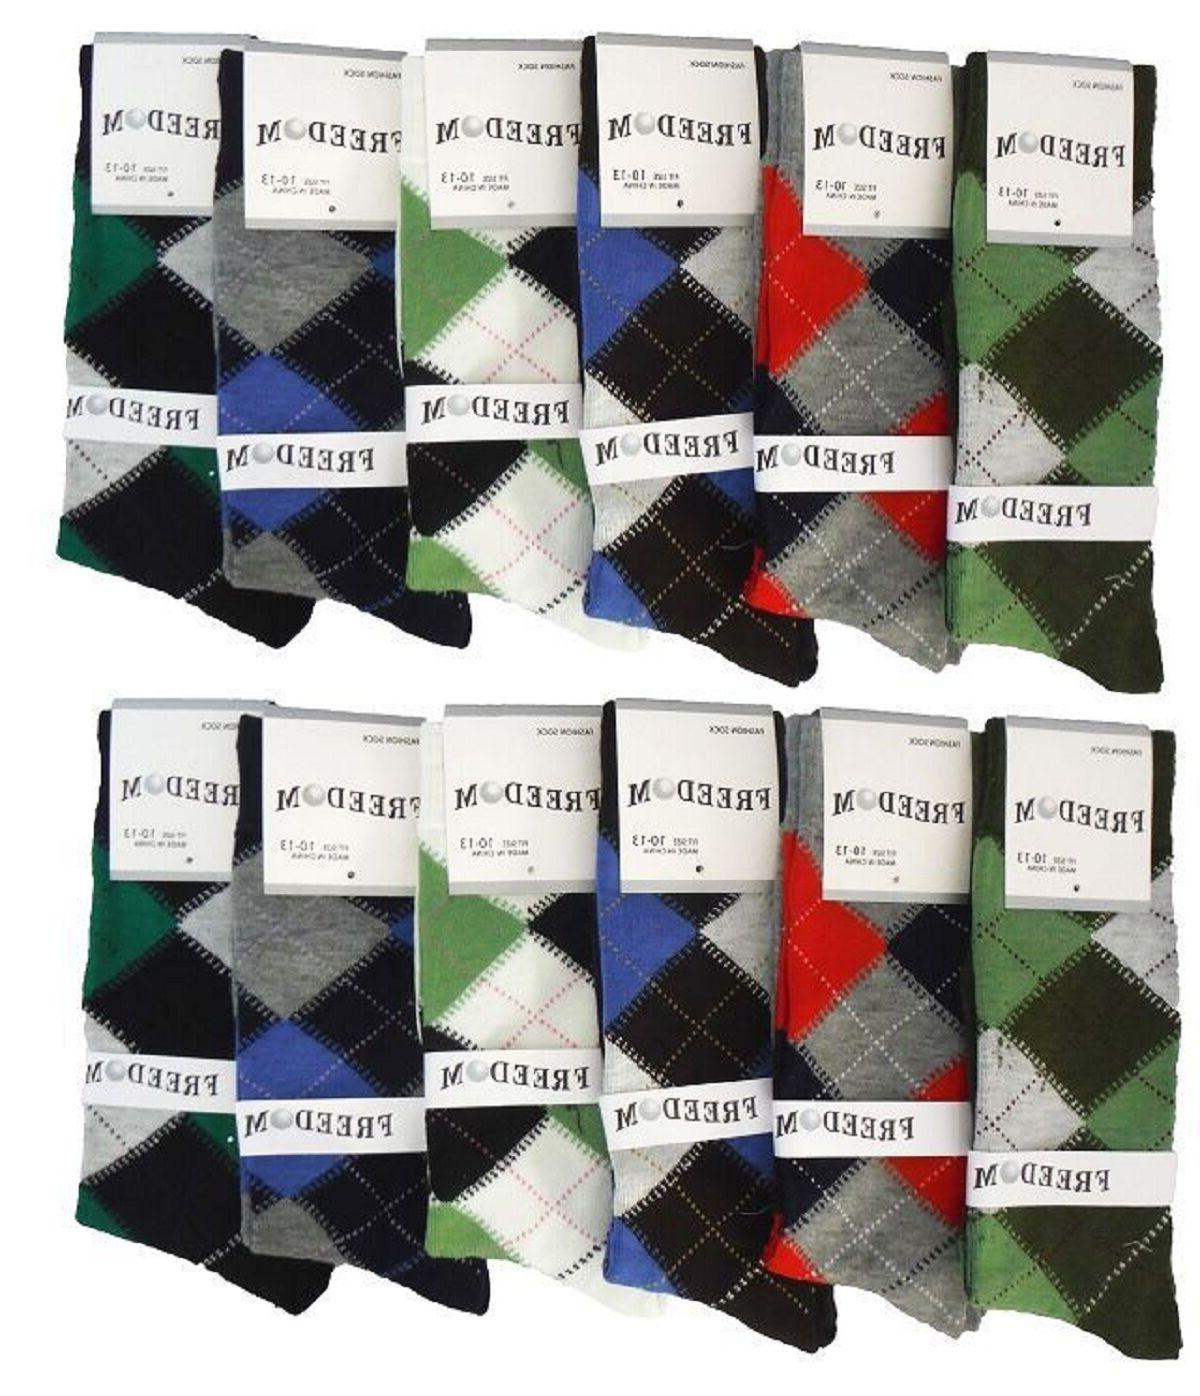 6 12 Pairs Dress Multi-Color Socks 10-13 from 5 Style #Freedom